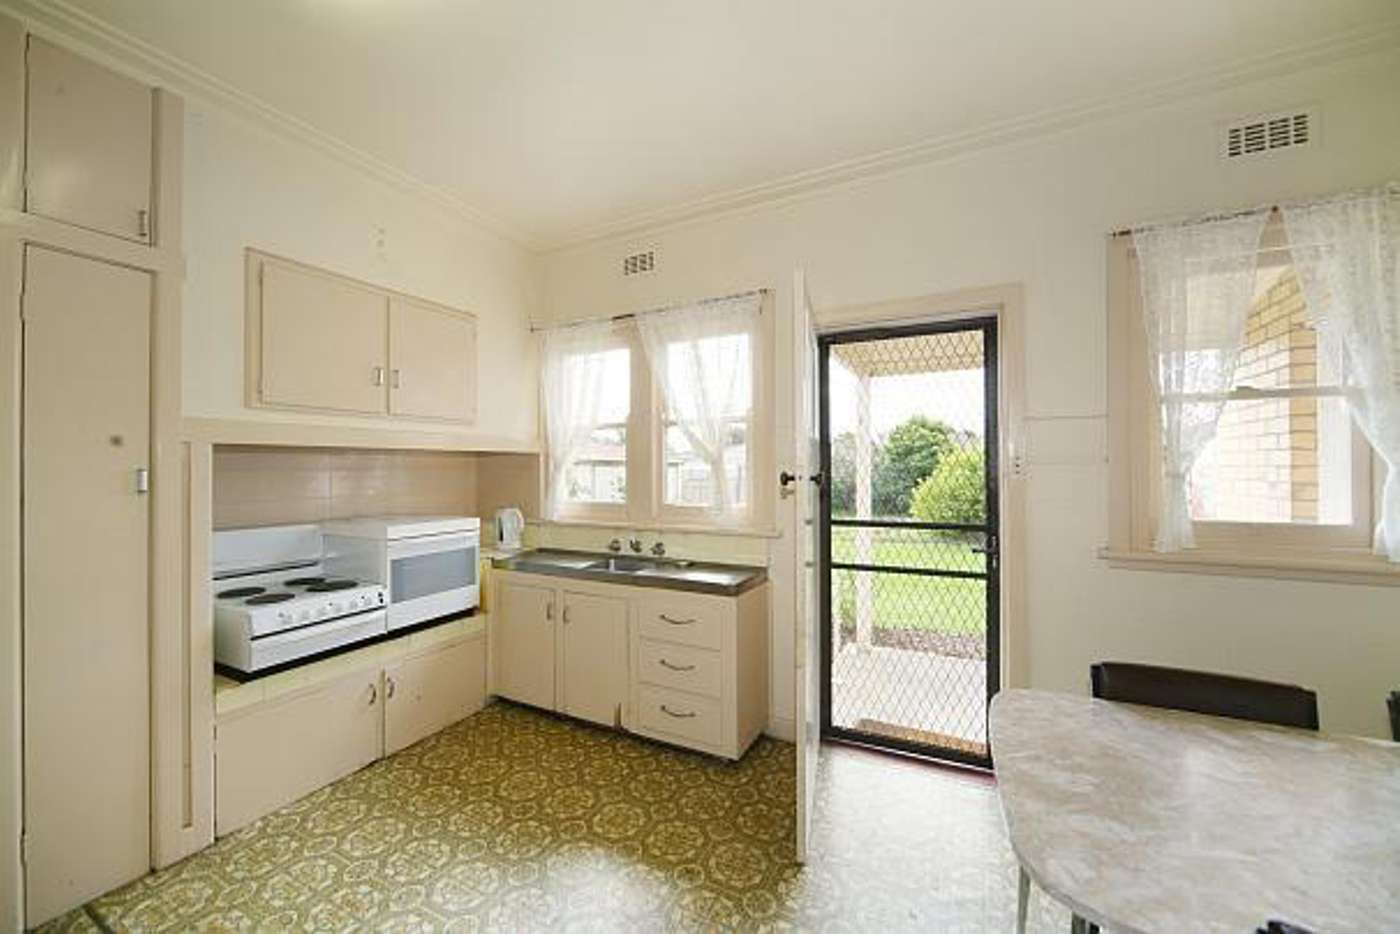 Fifth view of Homely house listing, 31 Renown Street, Bentleigh VIC 3204